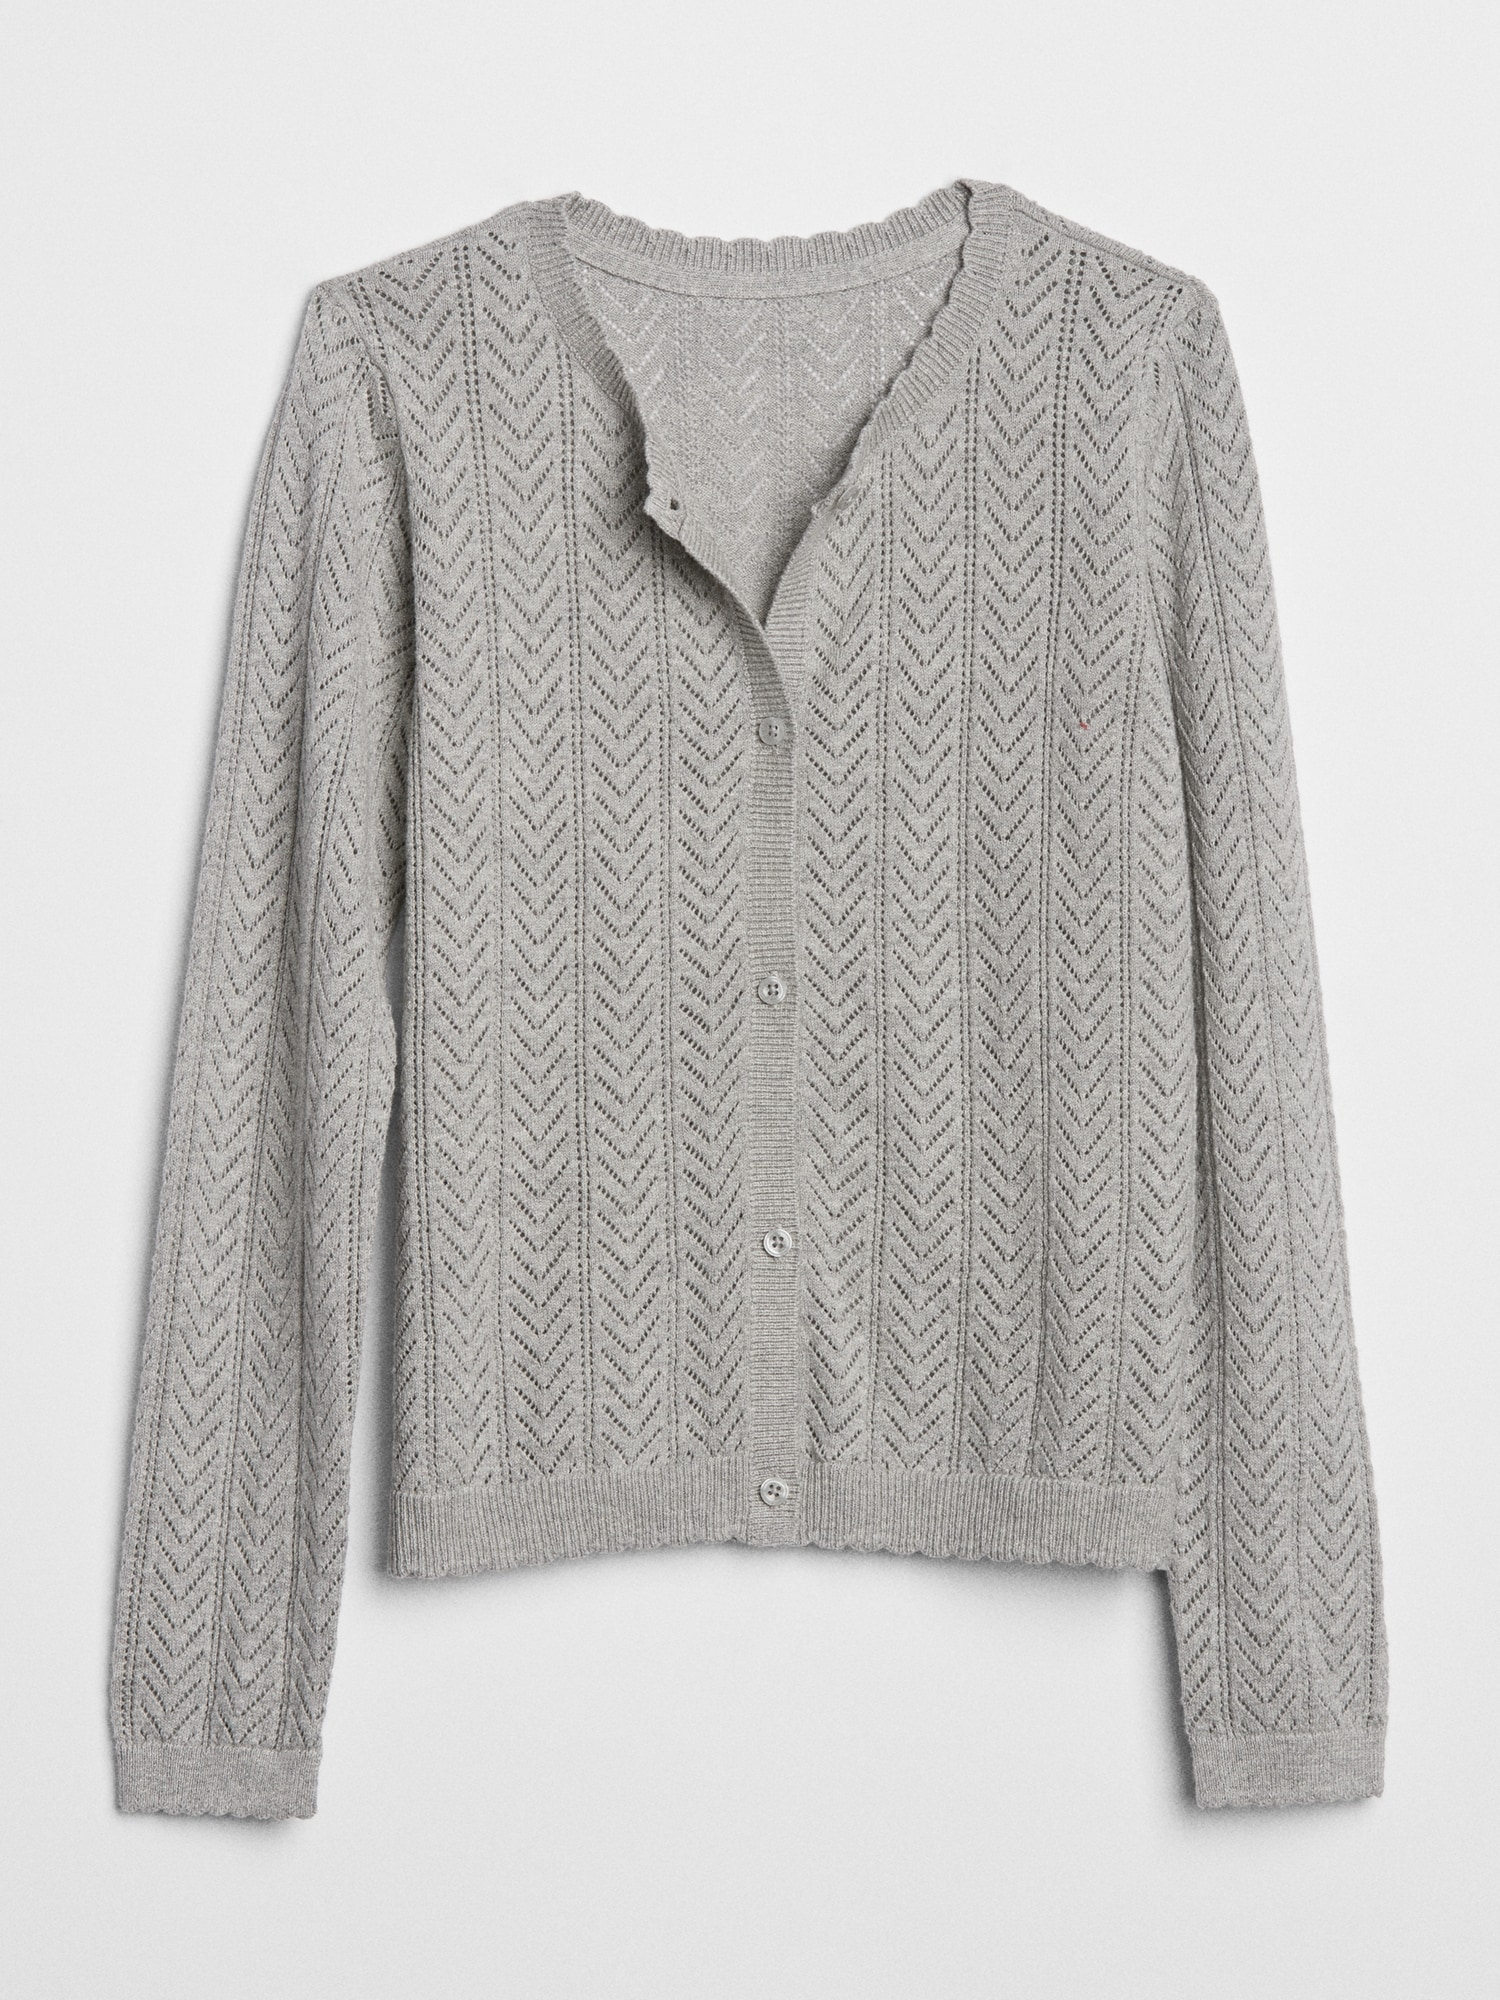 bb002224d2 Pointelle Cardigan Sweater